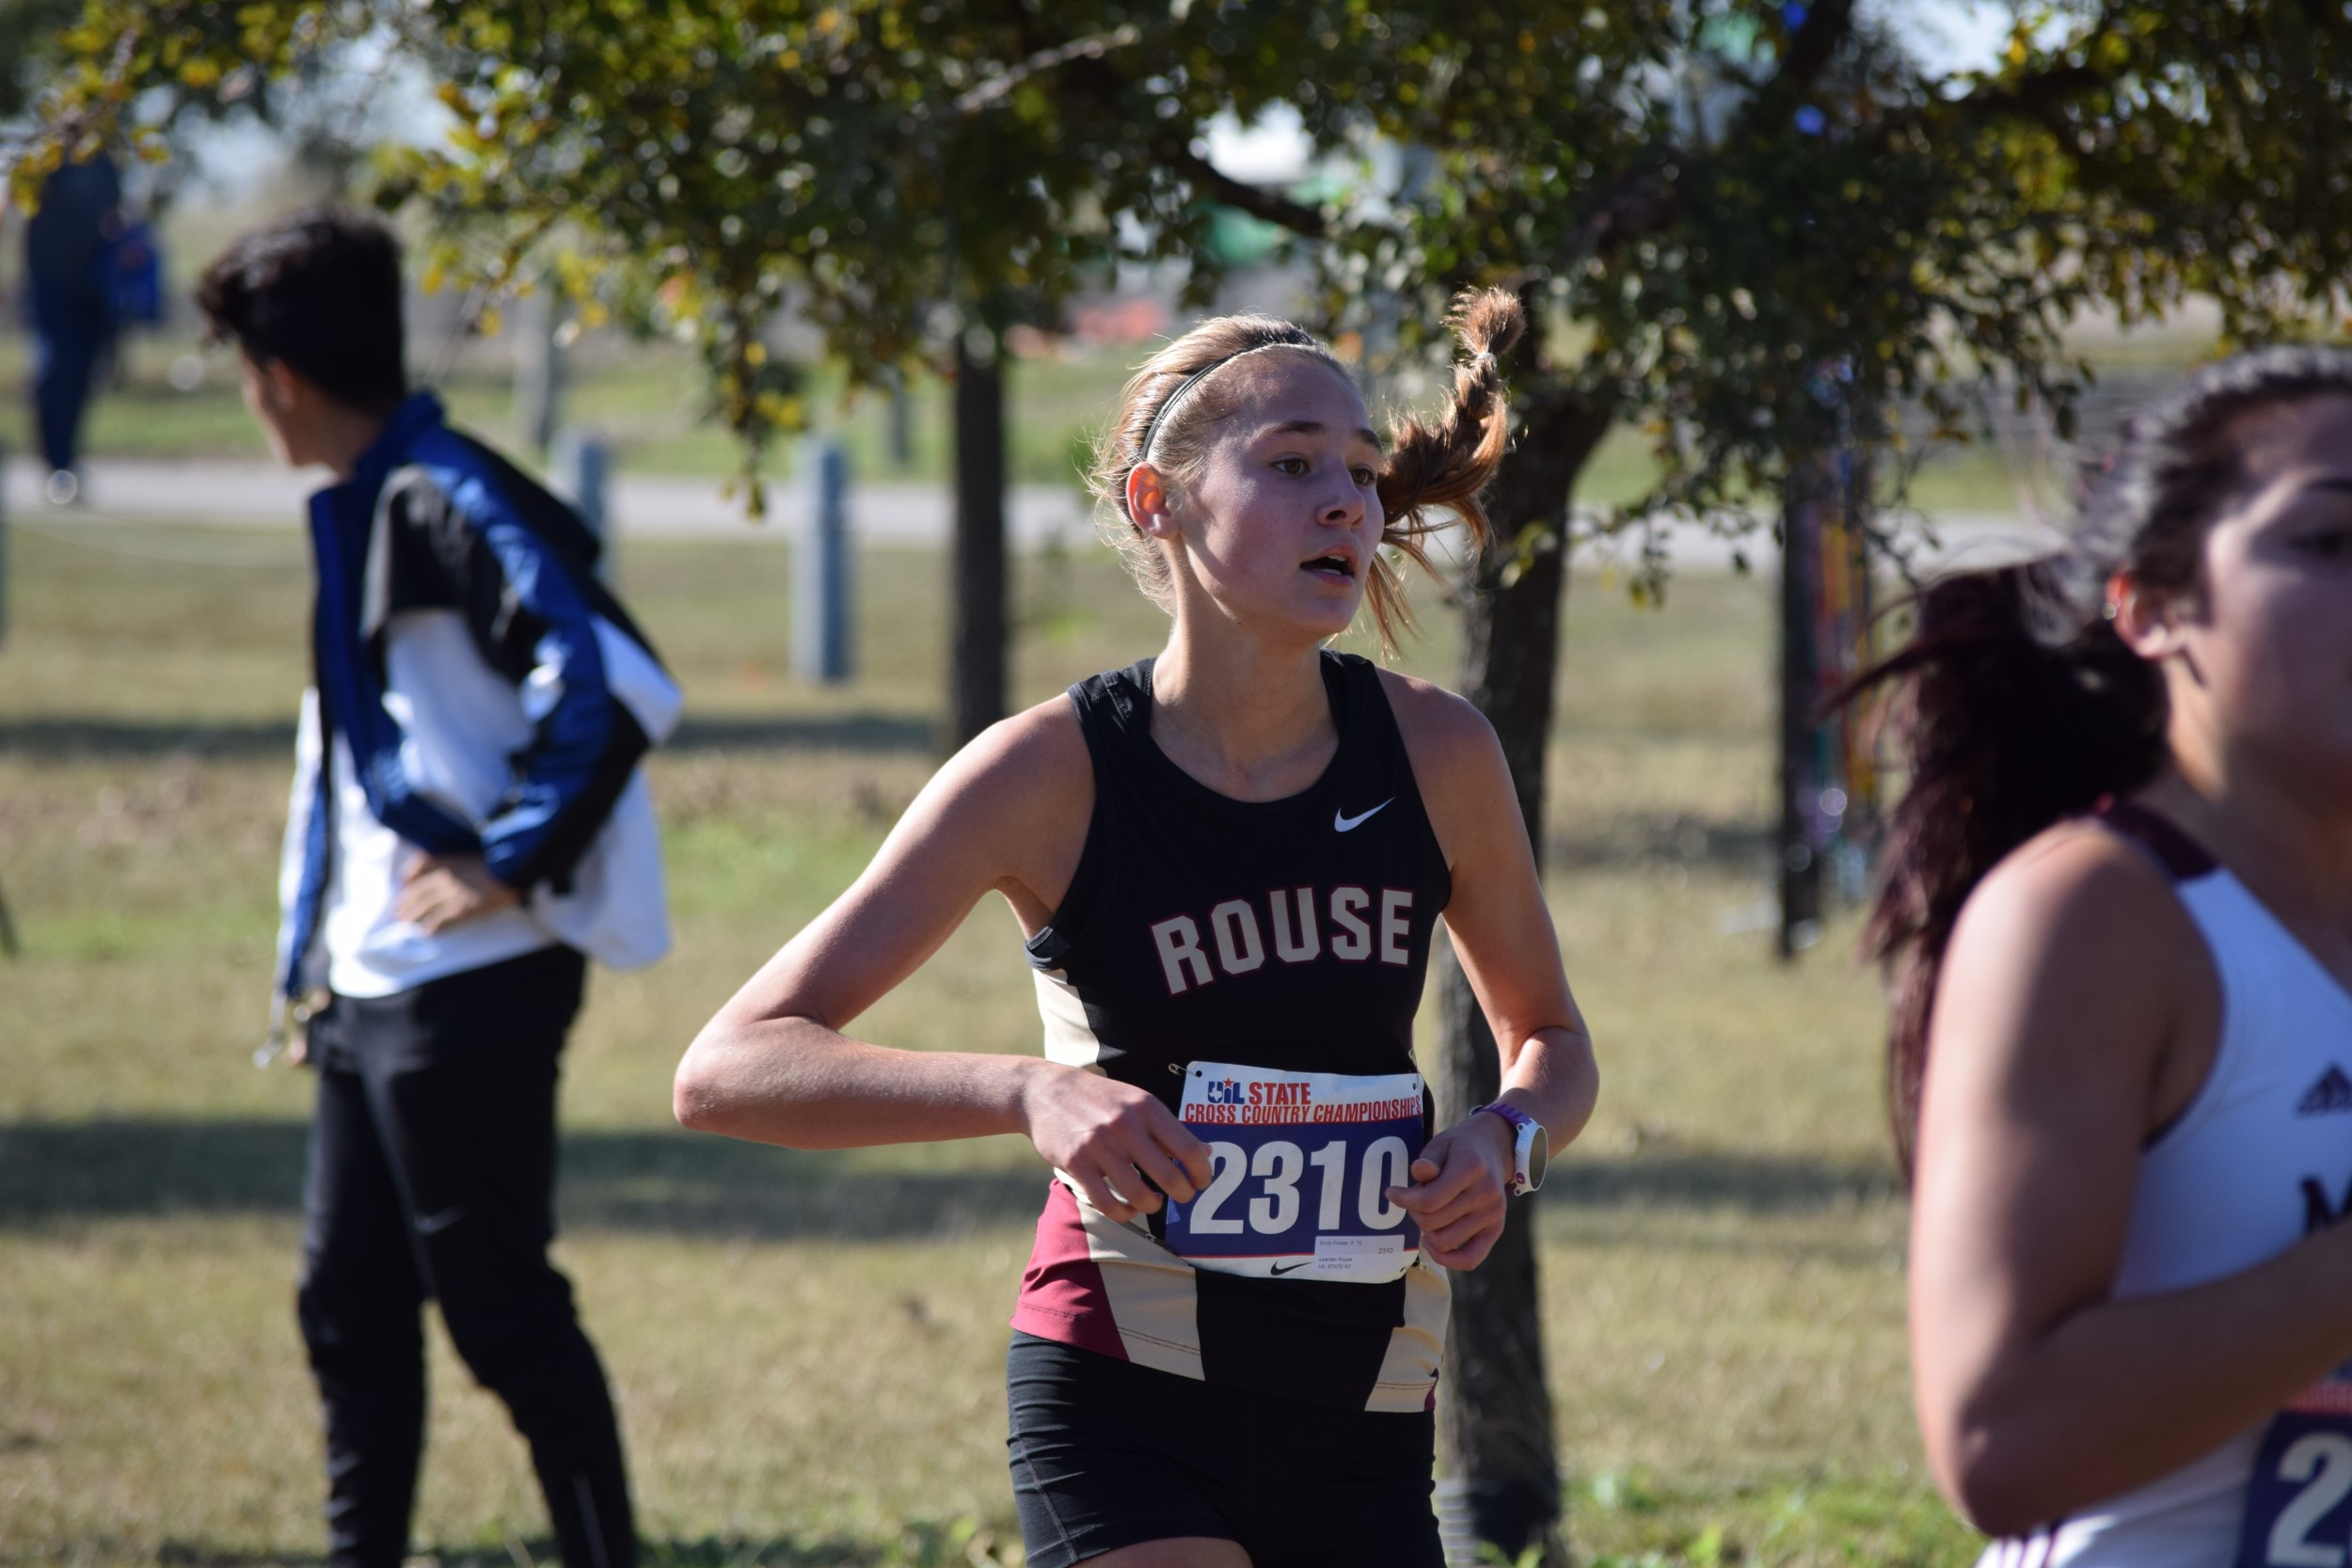 Rouse junior Emily Forster is the No. 1 runner for the Lady Raiders and finished second at the Pflugerville meet last Saturday with a time of 19:11.13.